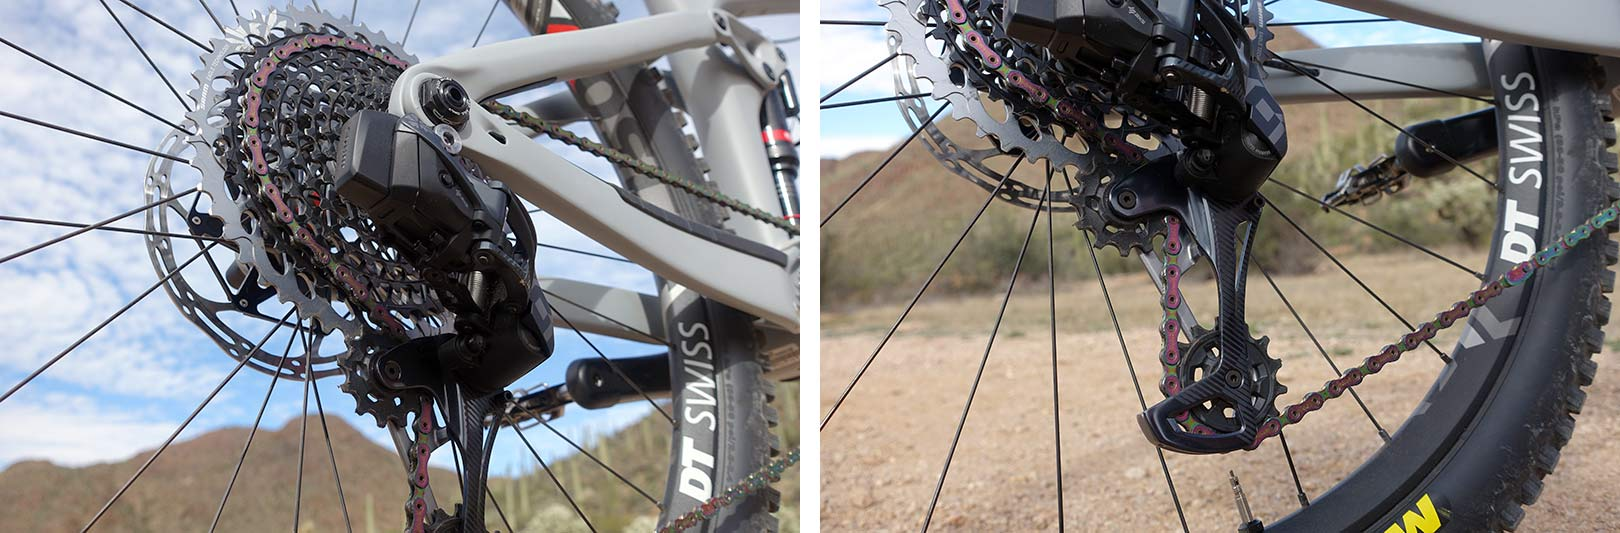 SRAM Eagle AXS eTap X01 and XX1 mountain bike group with wireless shifting tech info and details